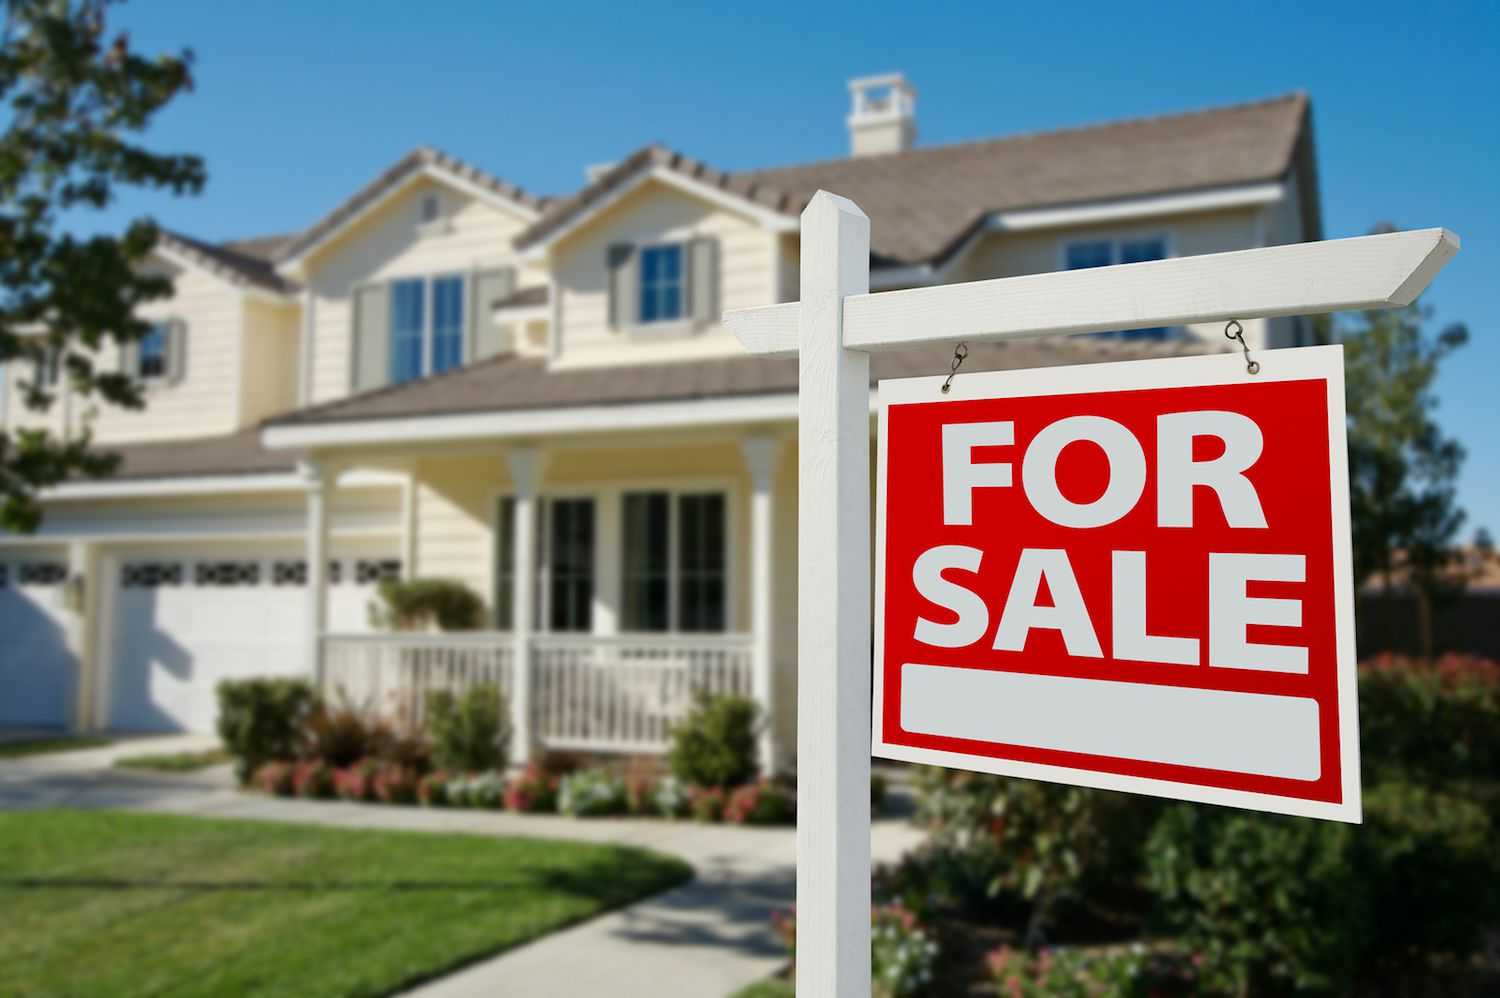 How to Get Ready for an Agent to List Your Home for Sale